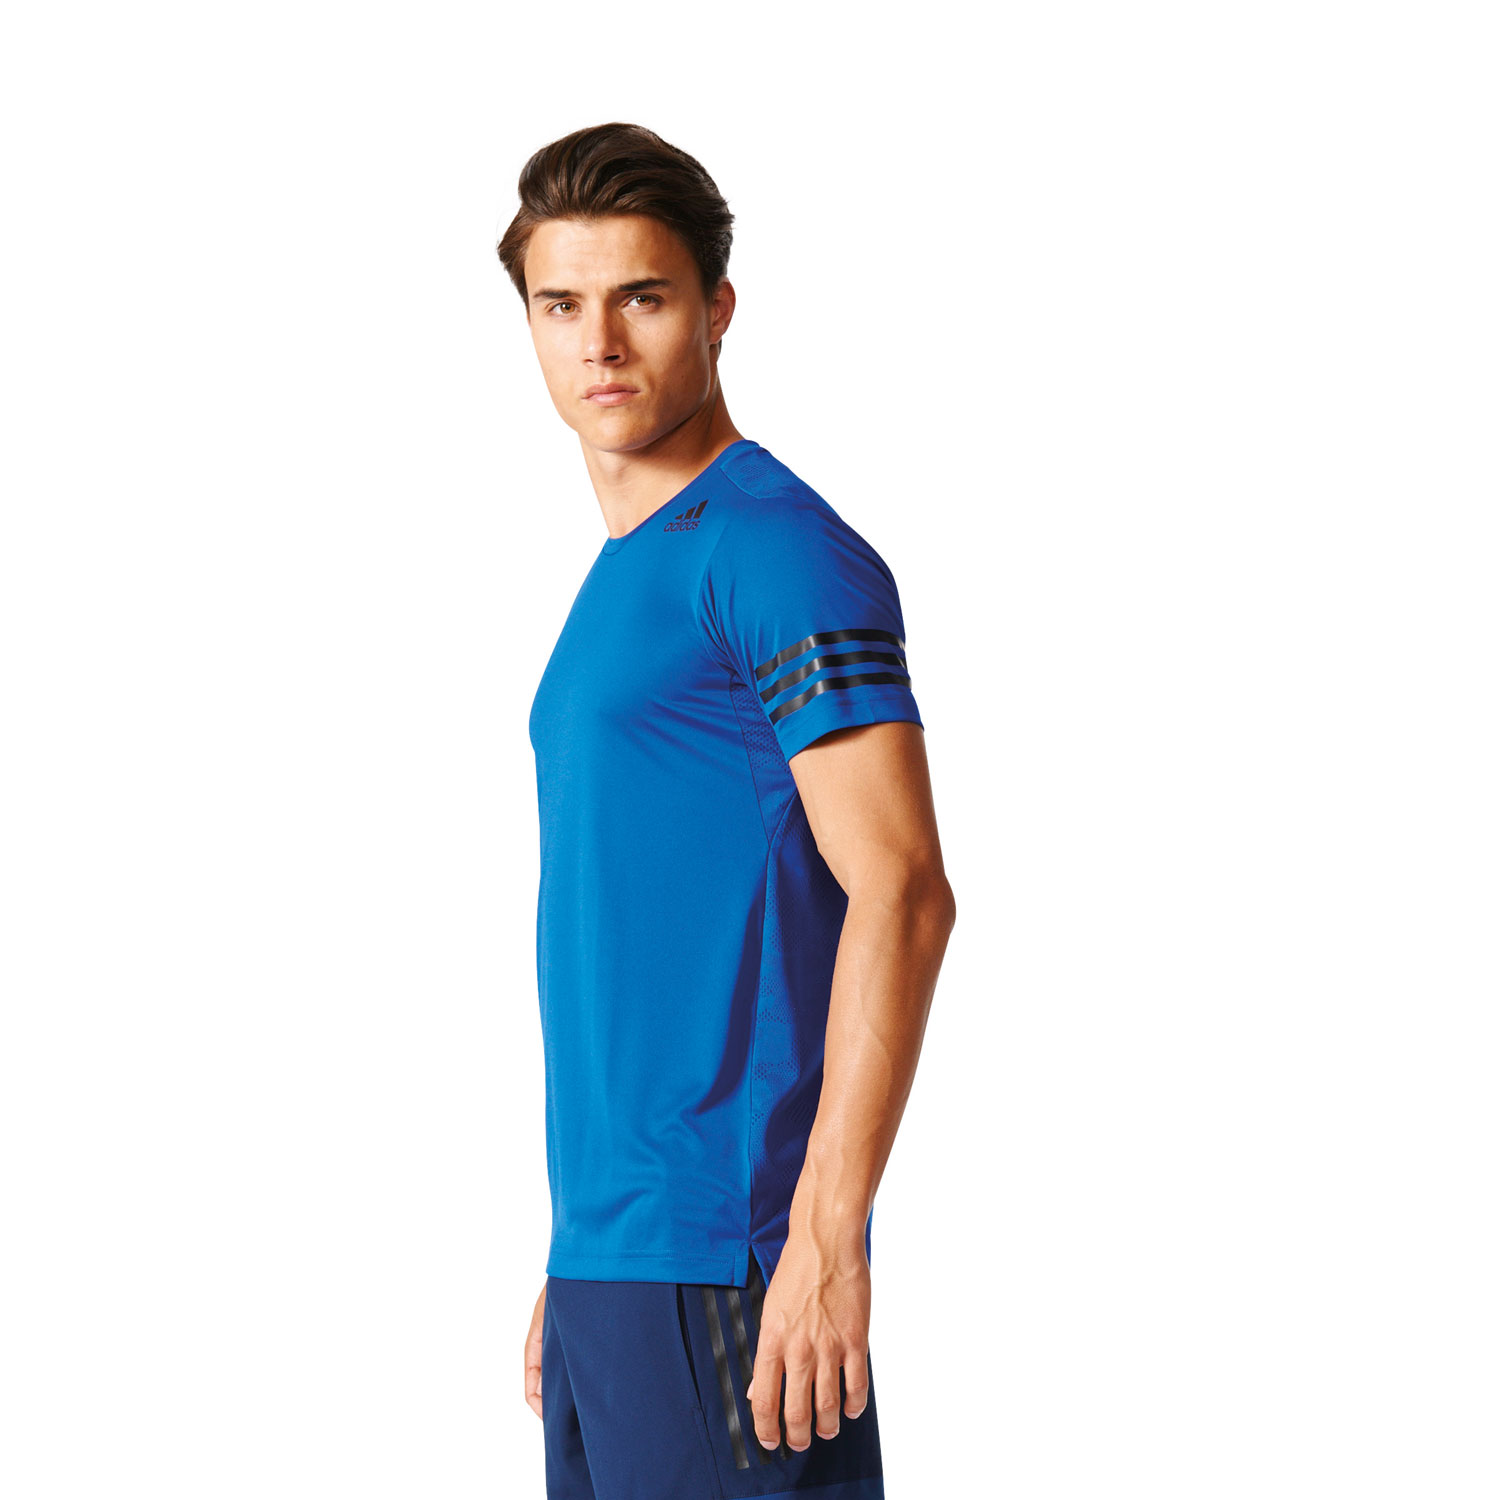 Adidas FreeLift Climacool Herren Trainingsshirt – Bild 4